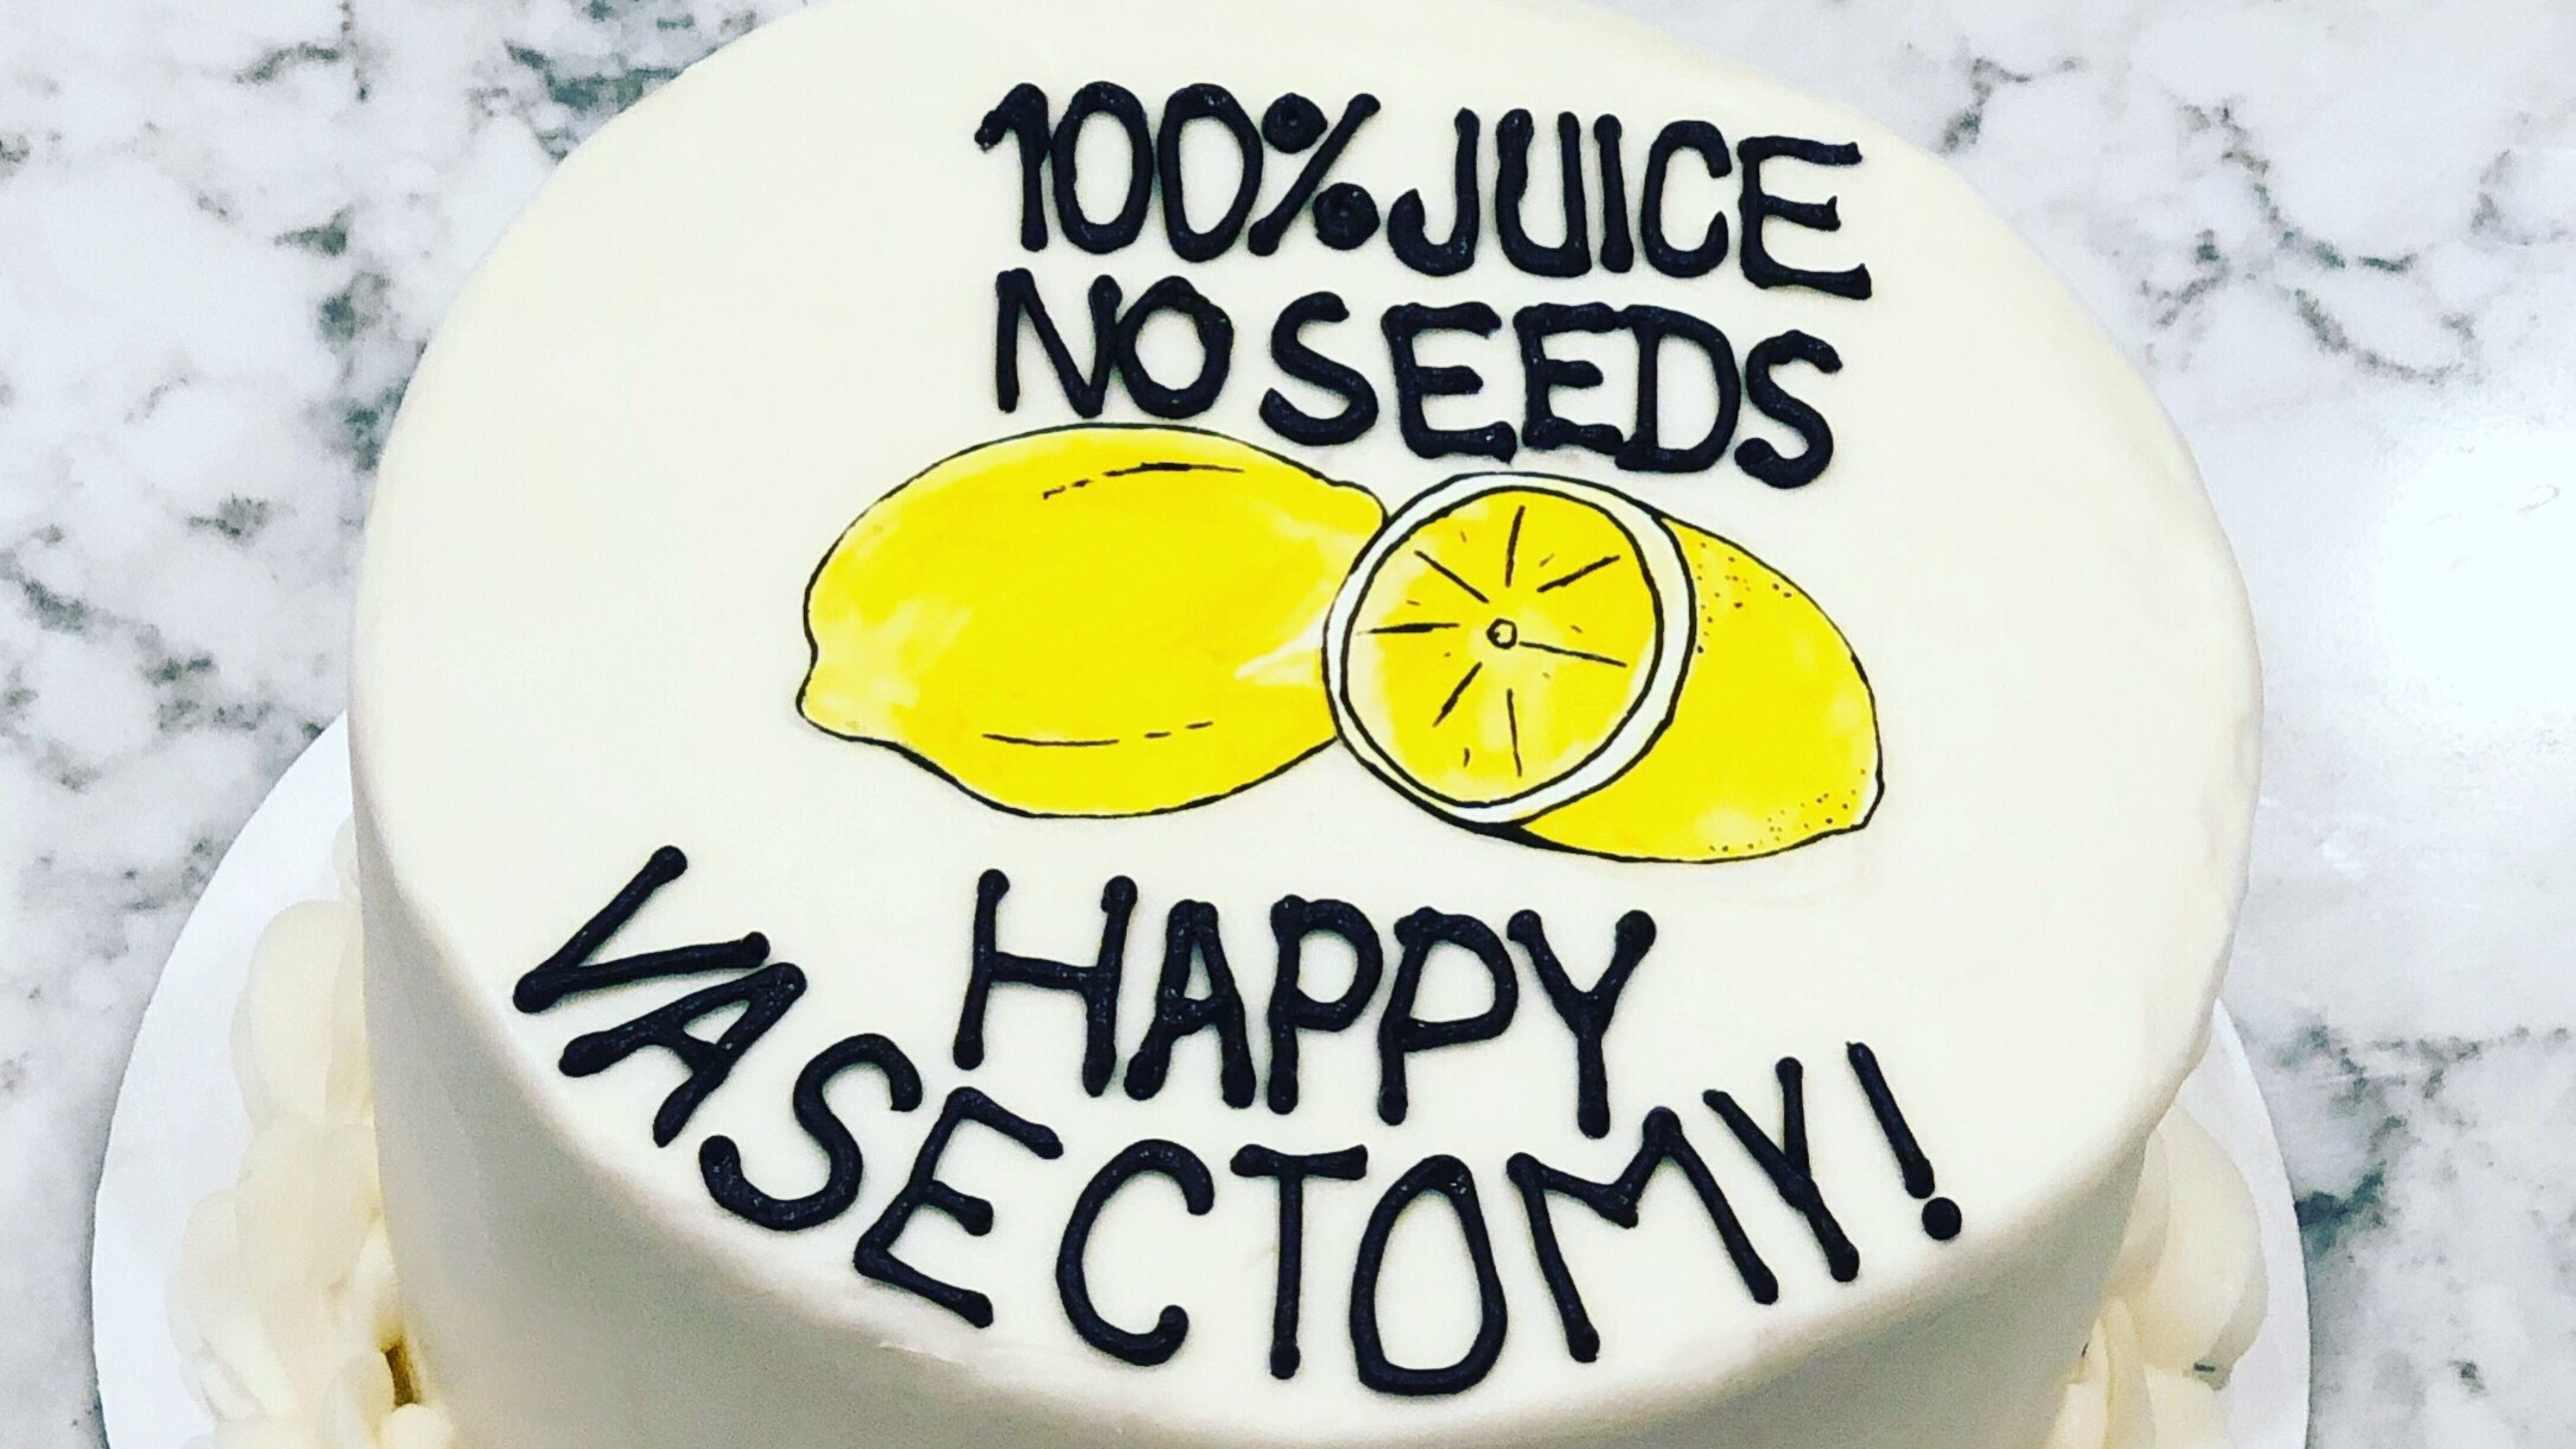 Vasectomy Cakes New Trend For Bakeries